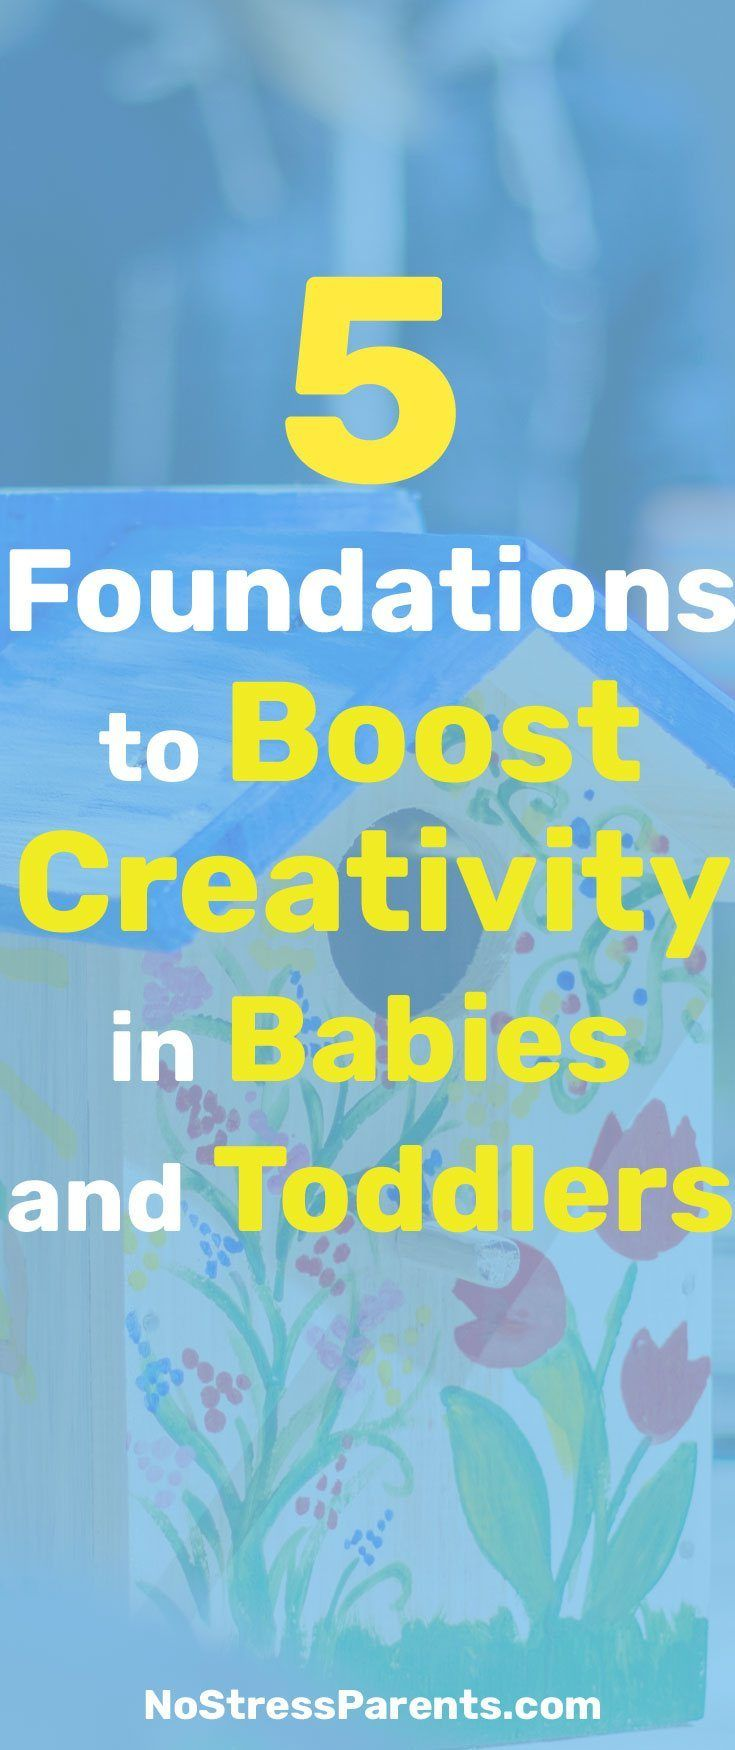 5 Foundations to Boost Creativity in Babies and Toddlers